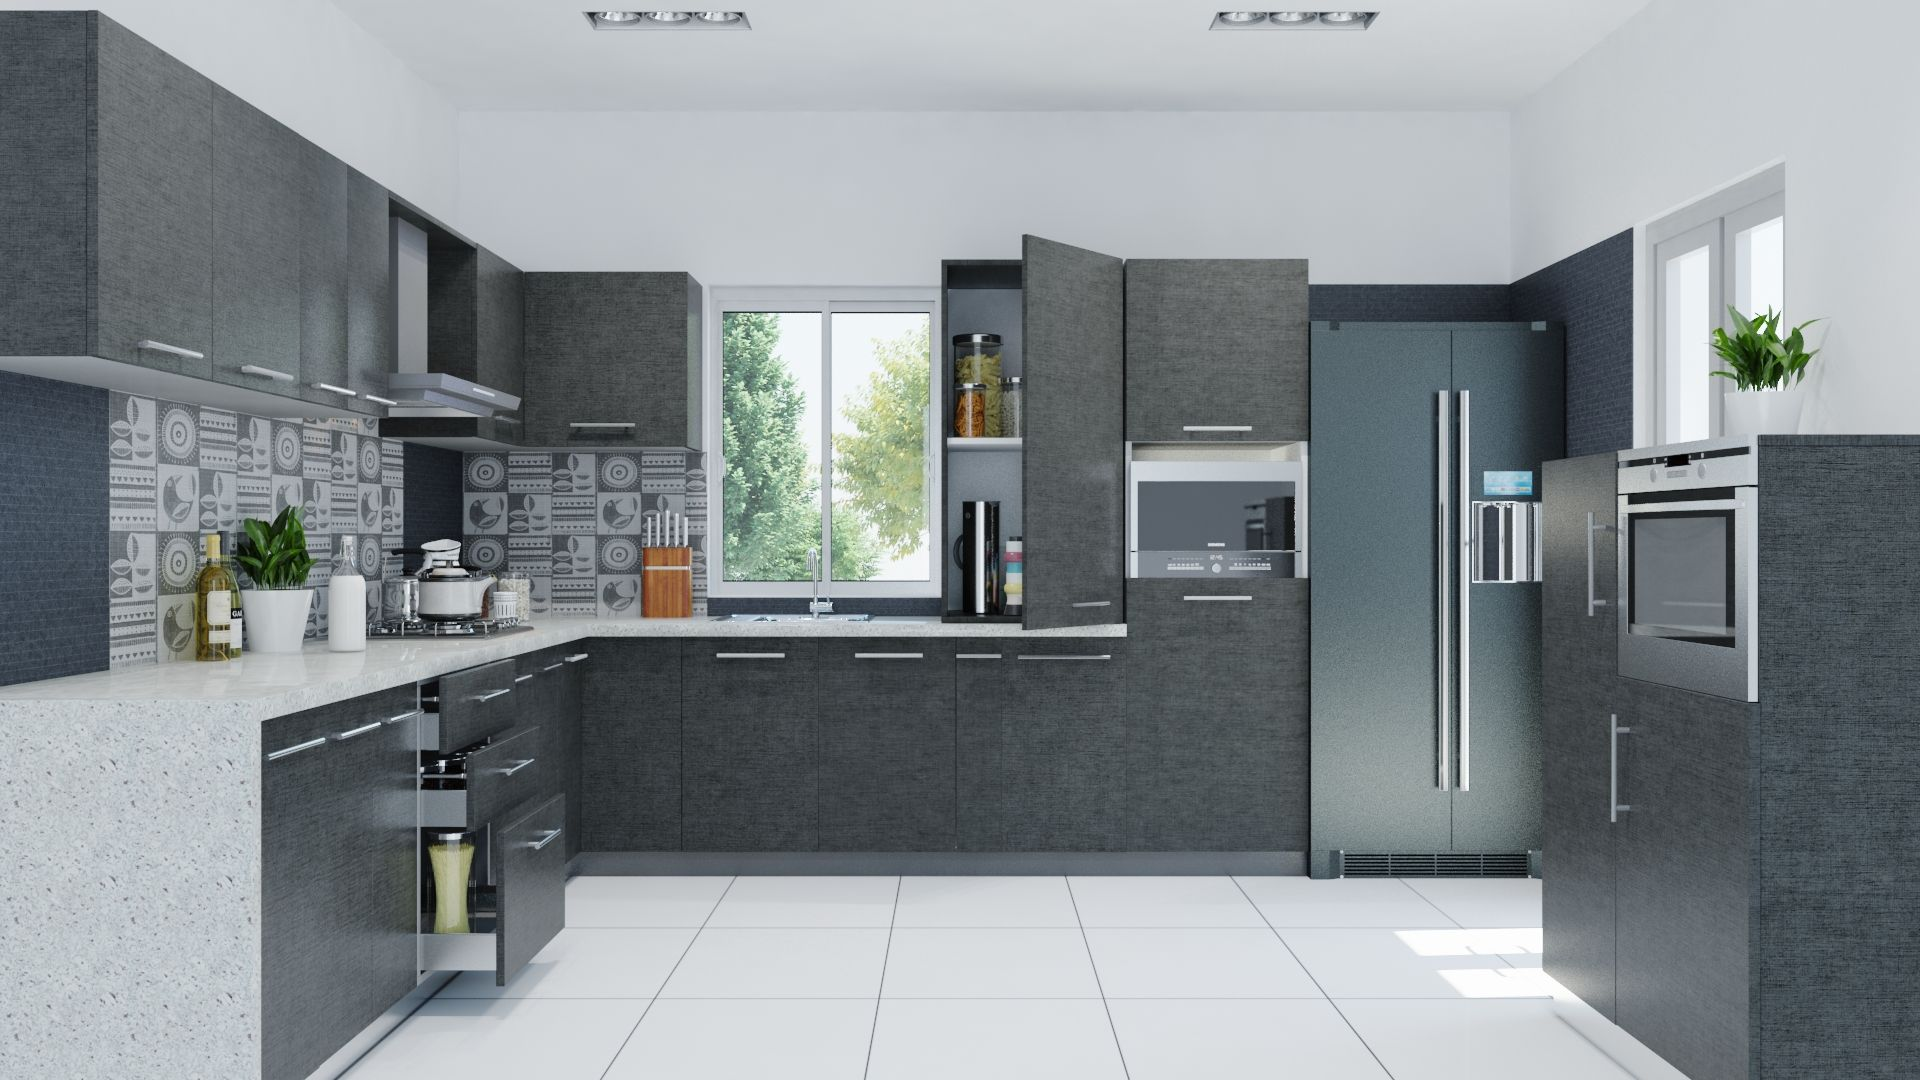 Kitchen grey modern kitchen cabinet white ceramic tile floor modern refrigerator accent Modern kitchen design tiles